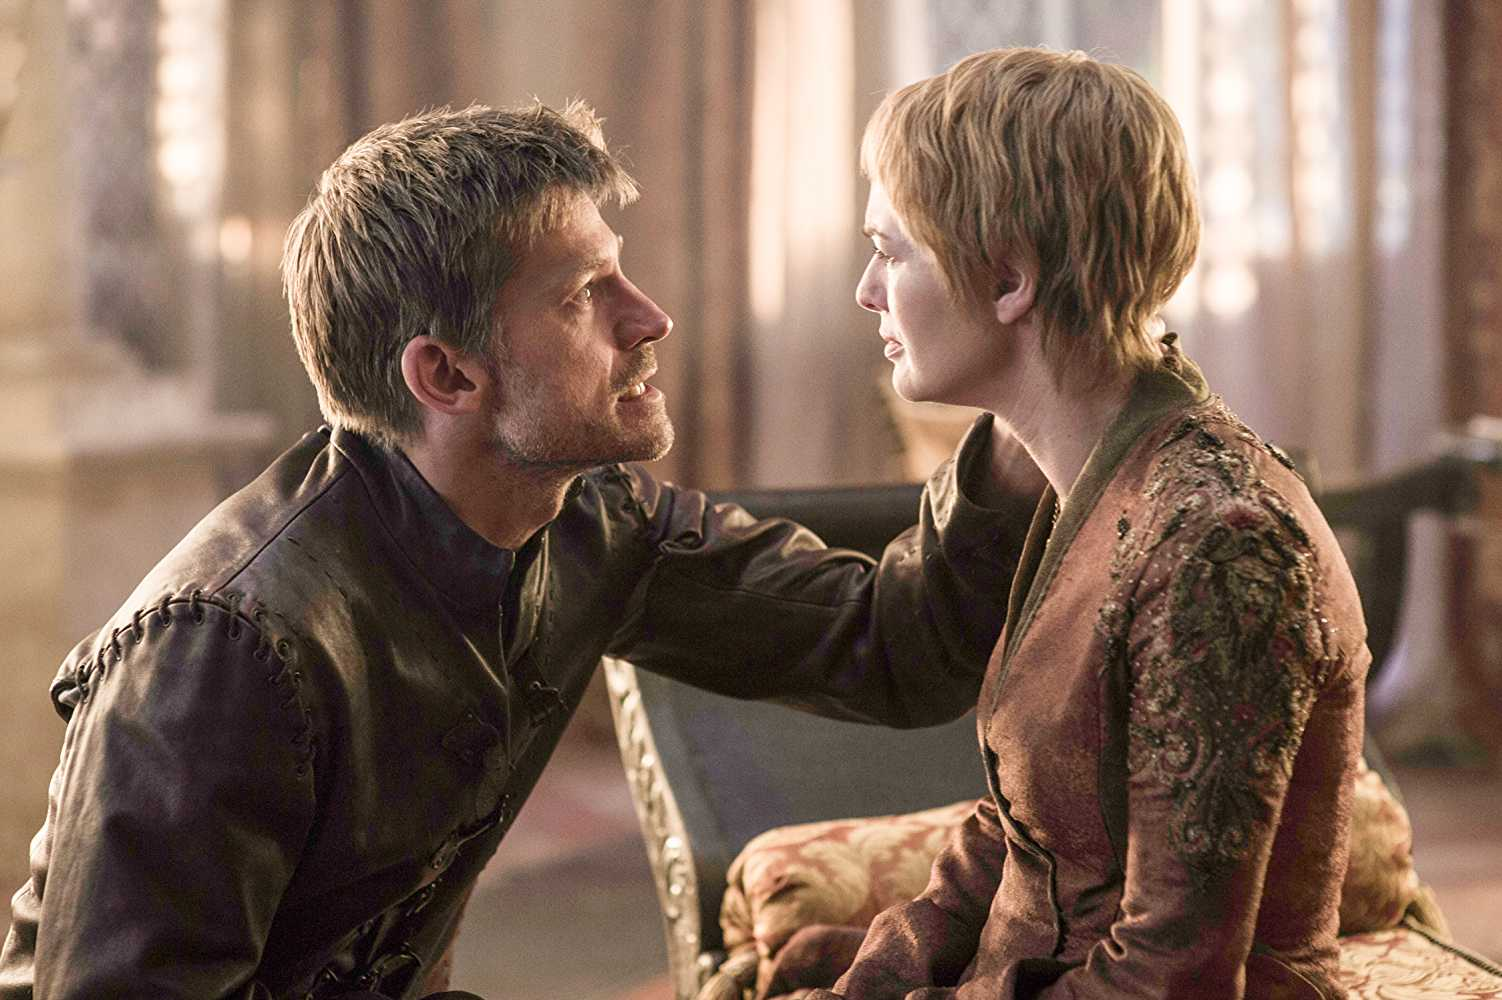 Nikolaj Coster-Waldau (Jaime Lannister) and Lena Headey (Cersei Lannister) in Game of Thrones. Source: IMDB